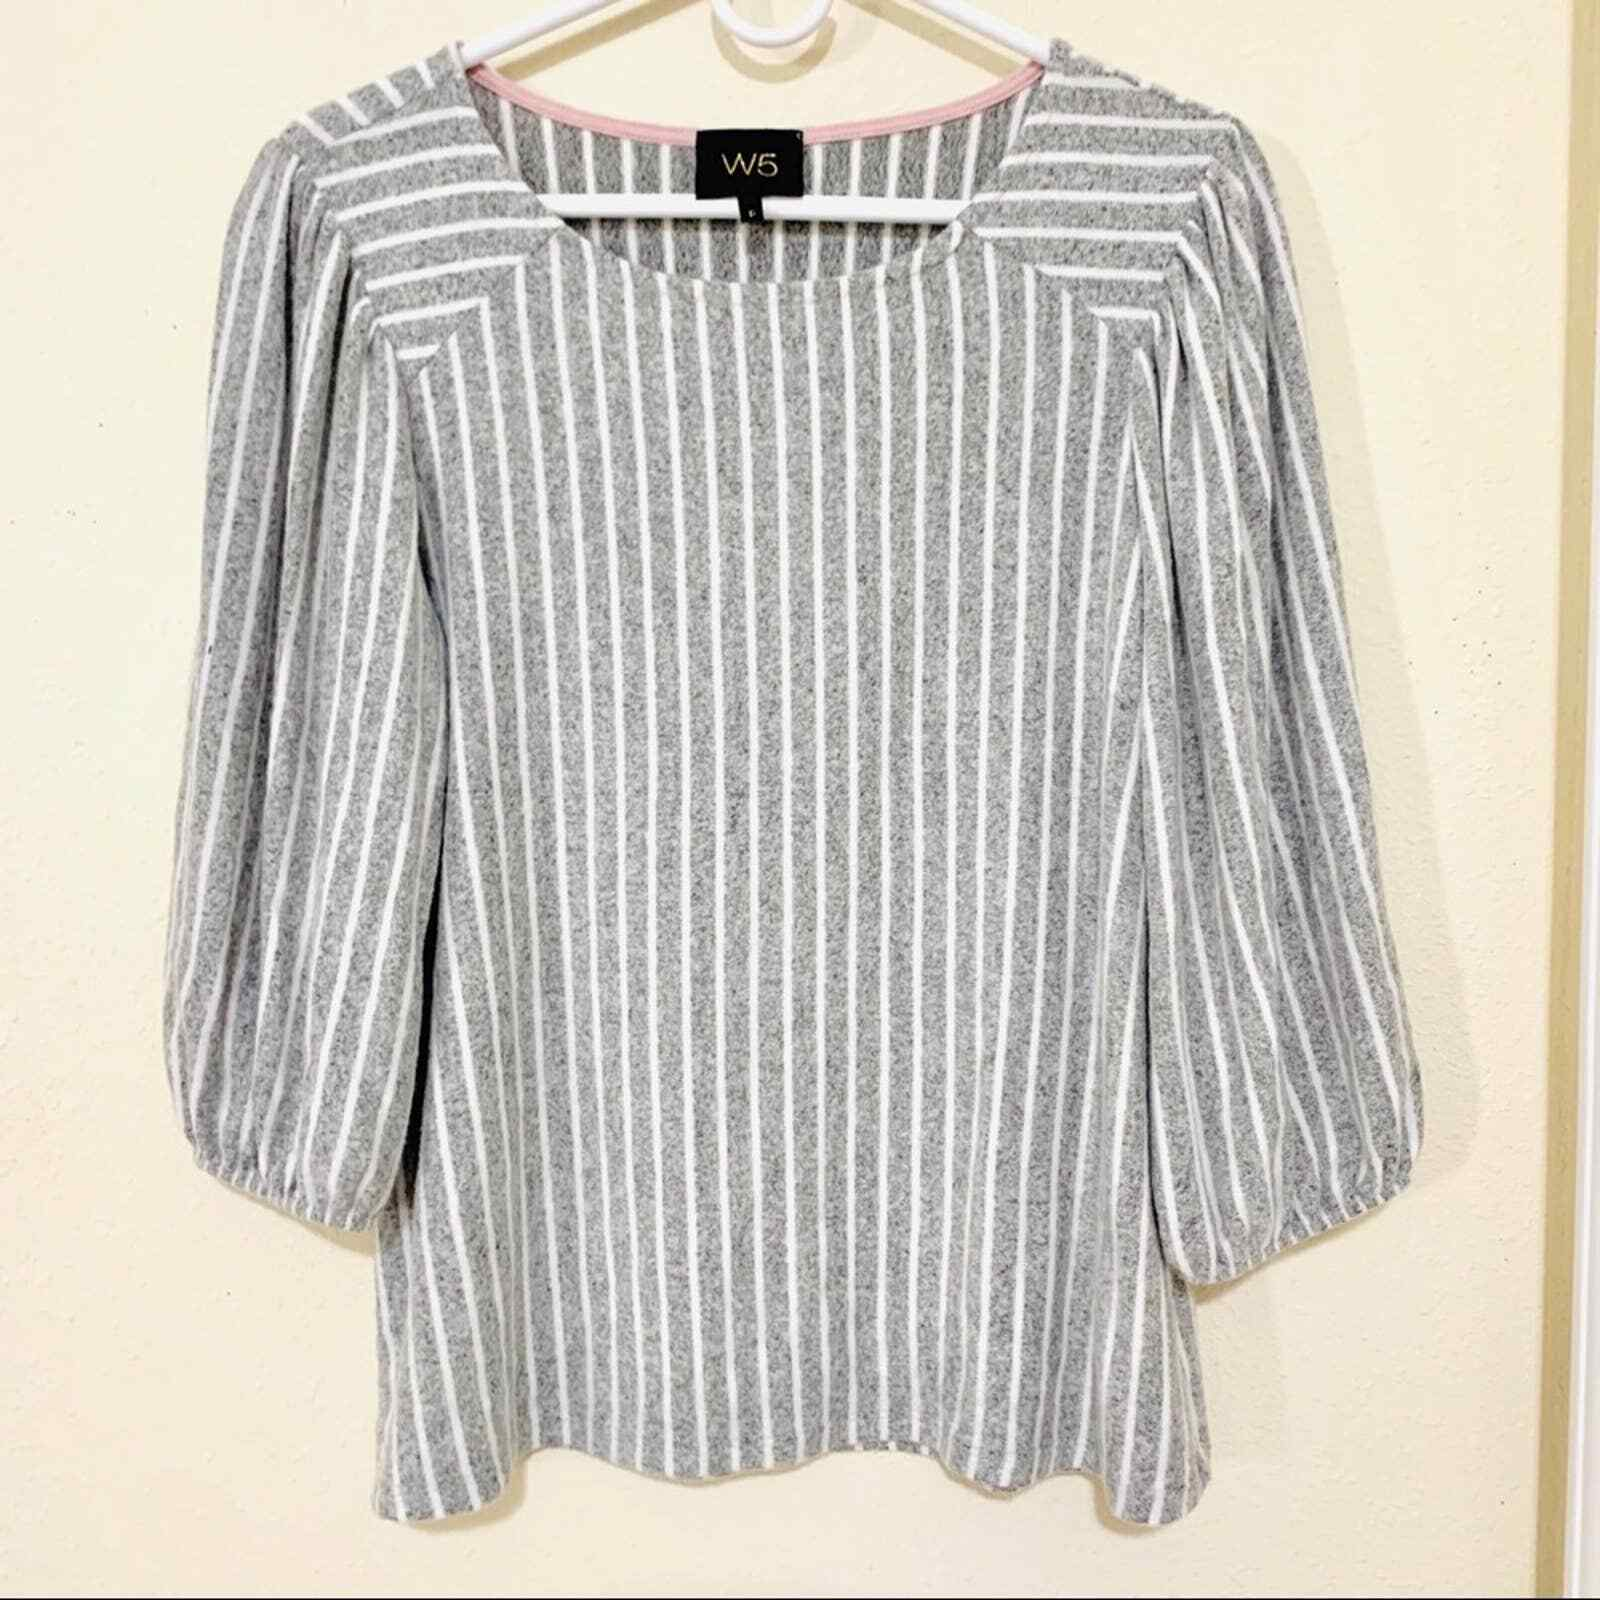 ANTHROPOLOGIE W5 striped puffed shoulder blouse s… - image 1